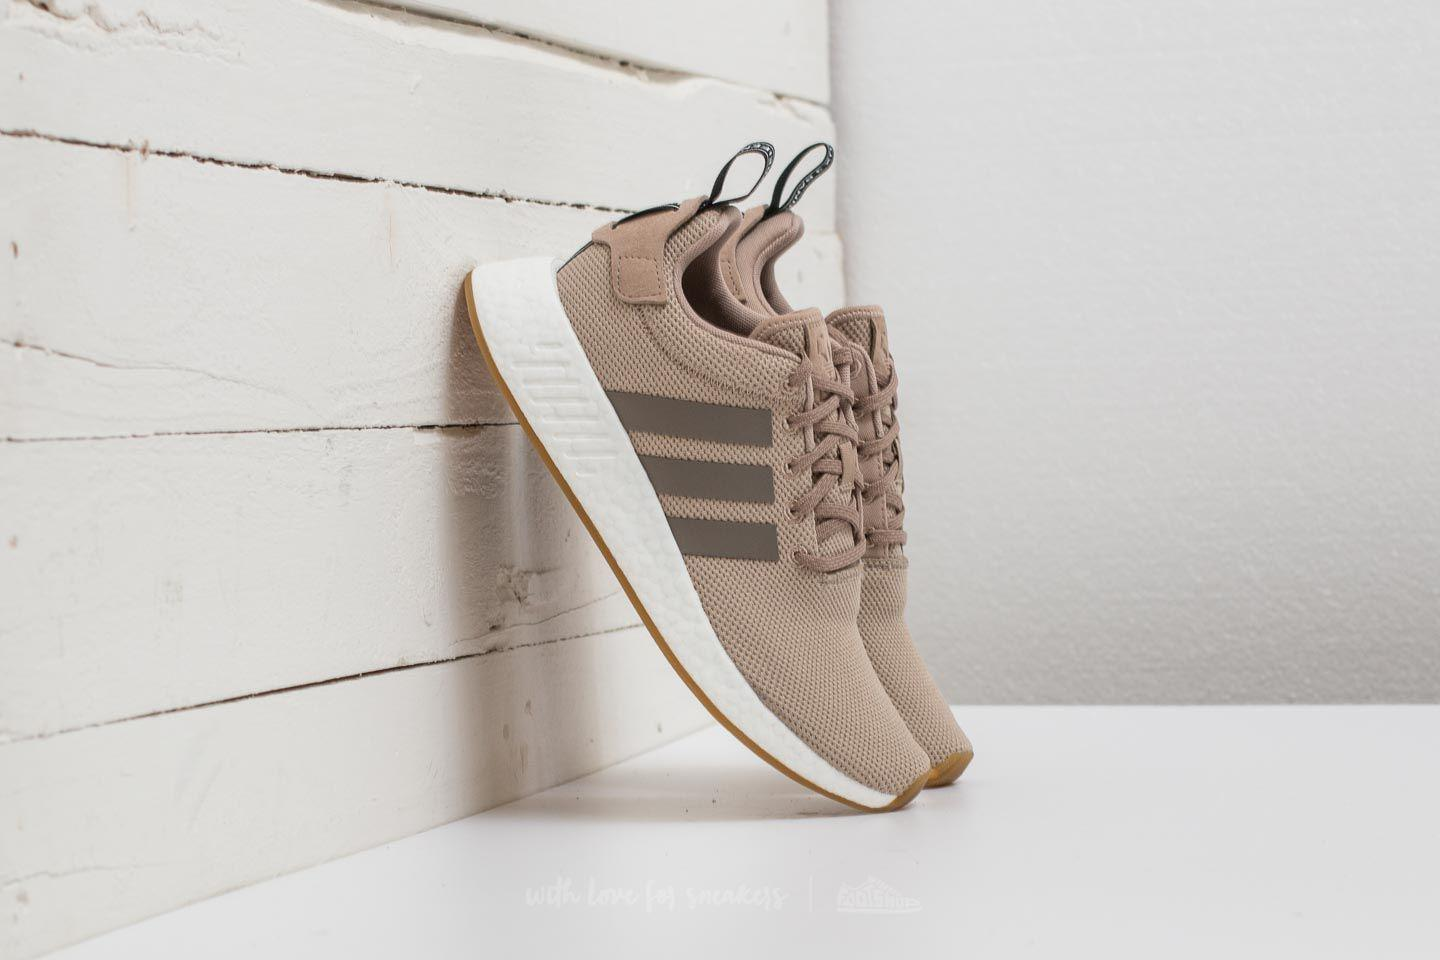 1ad3e5e7a53 Lyst - adidas Originals Adidas Nmd r2 Trace Khaki  Simple Brown ...